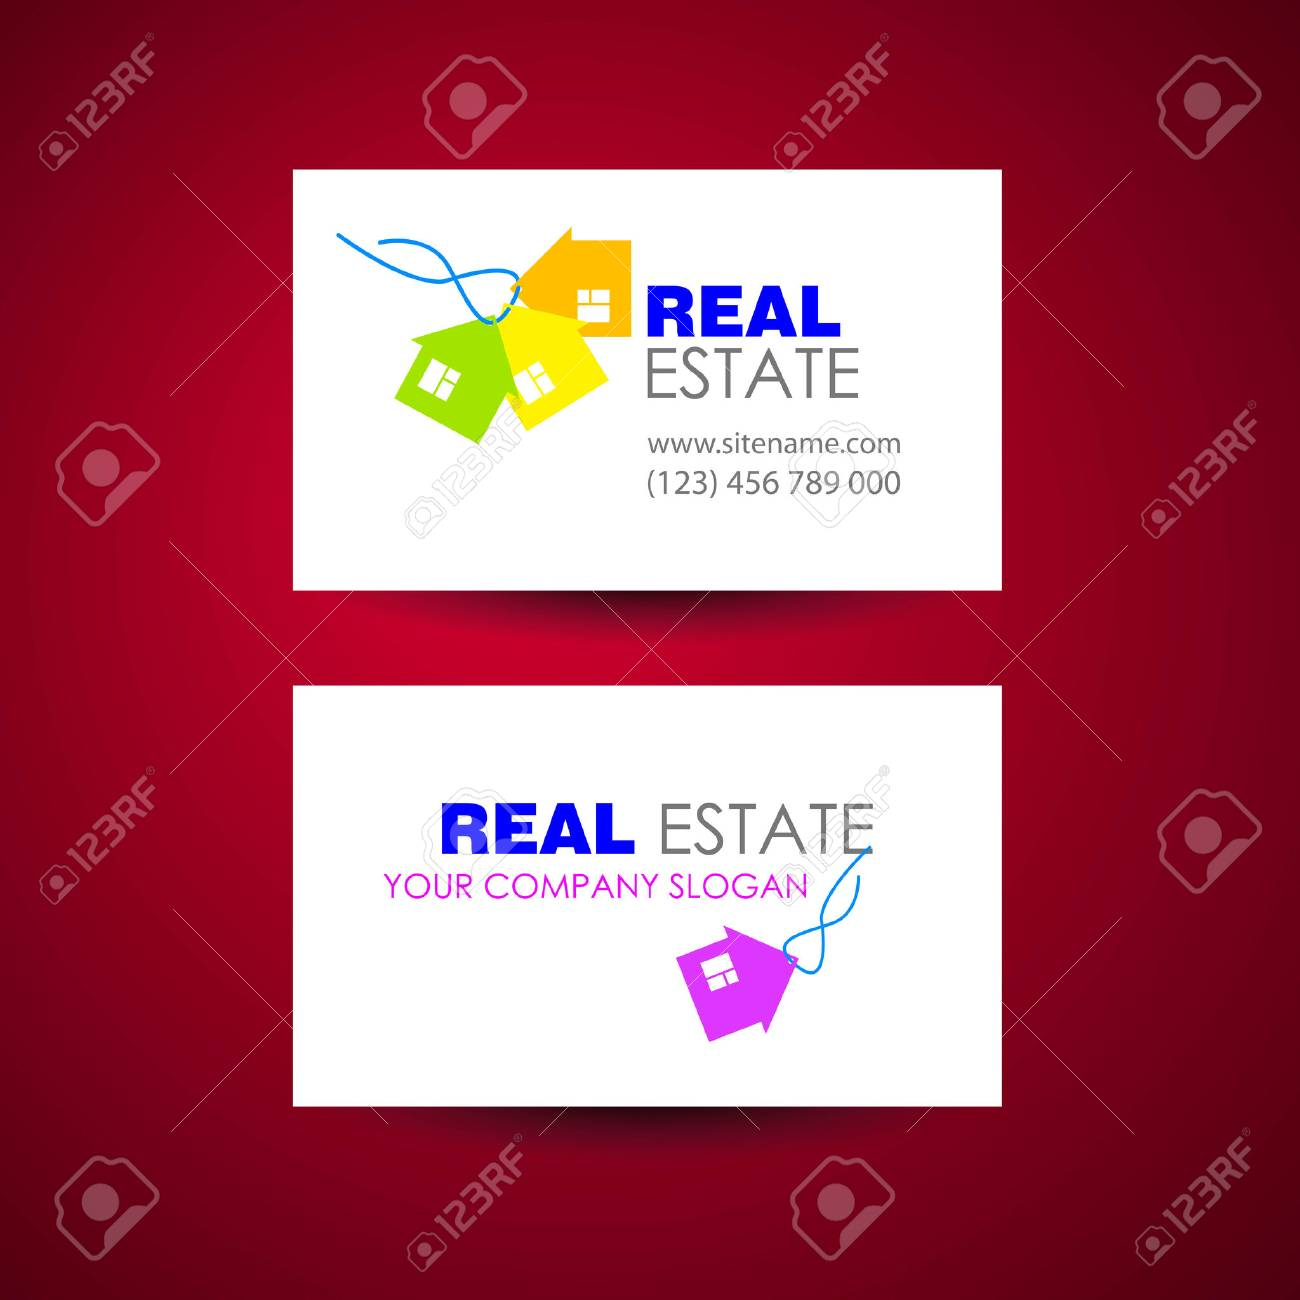 Eco home and real estate logo template business card design idea eco home and real estate logo template business card design idea banco de imagens reheart Gallery